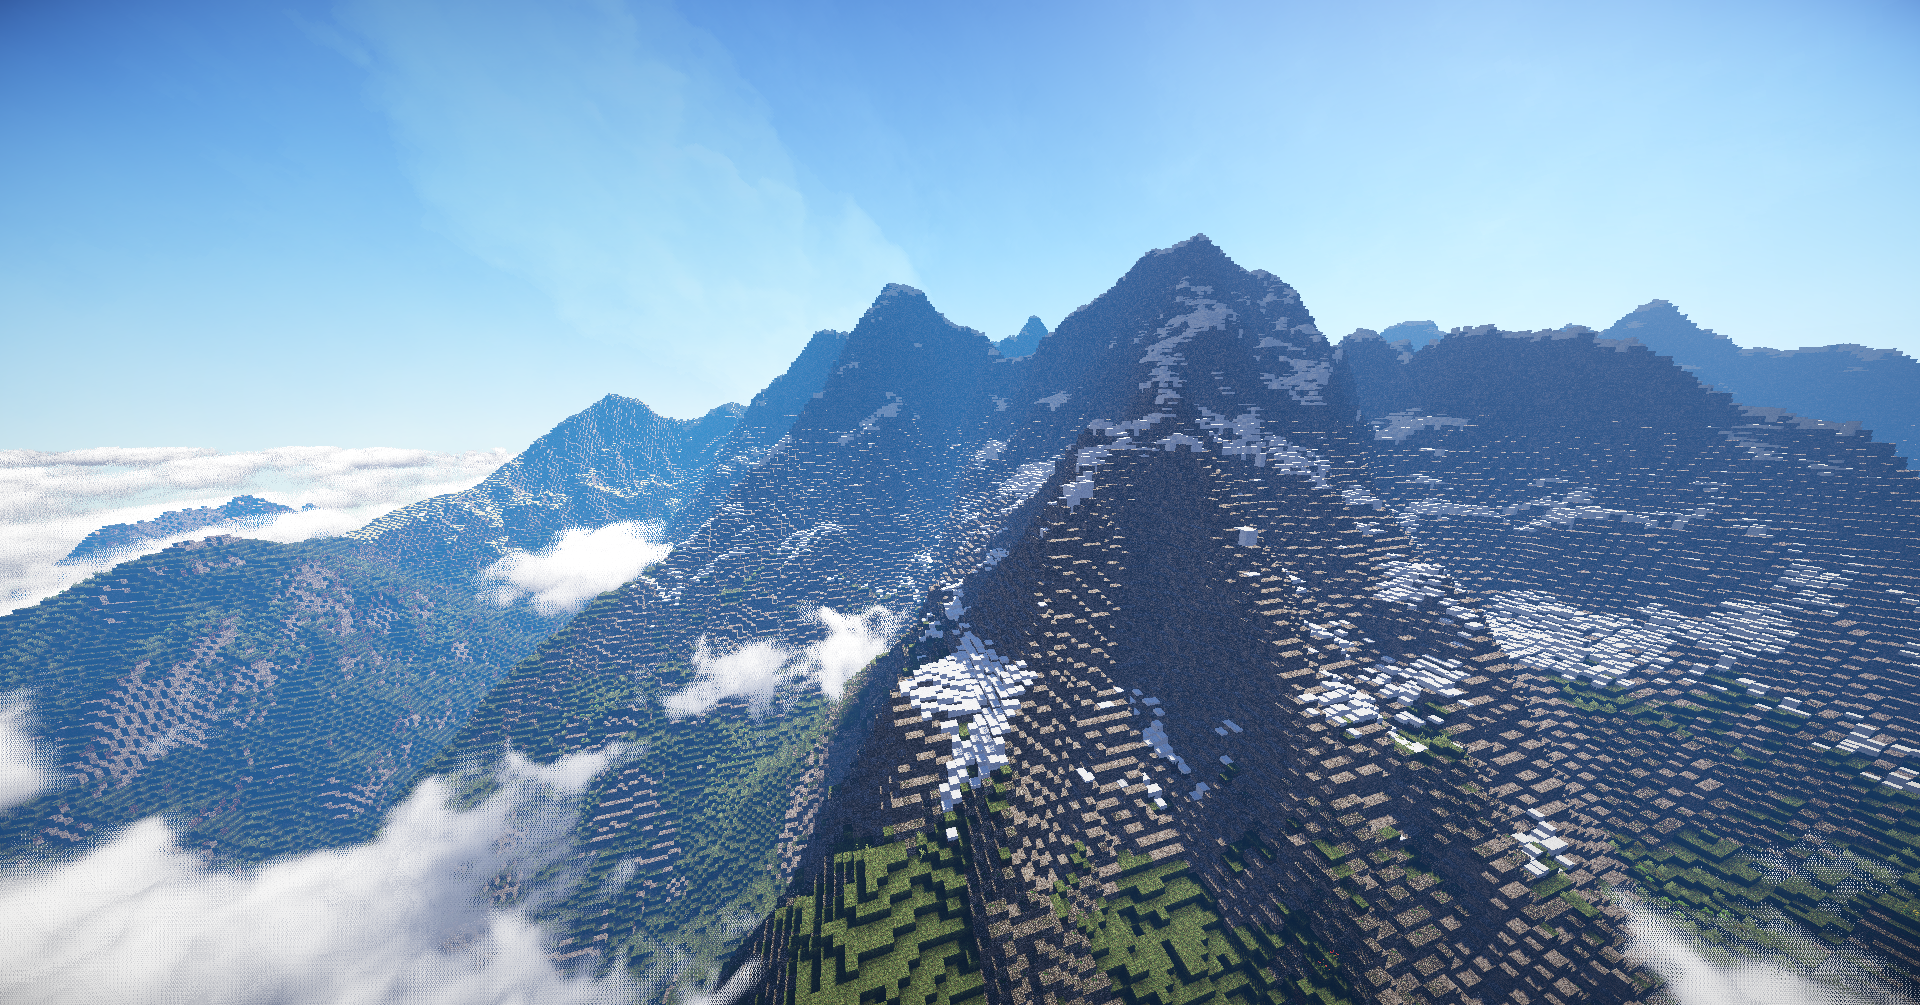 Minecraft Moutains Wallpaper Image